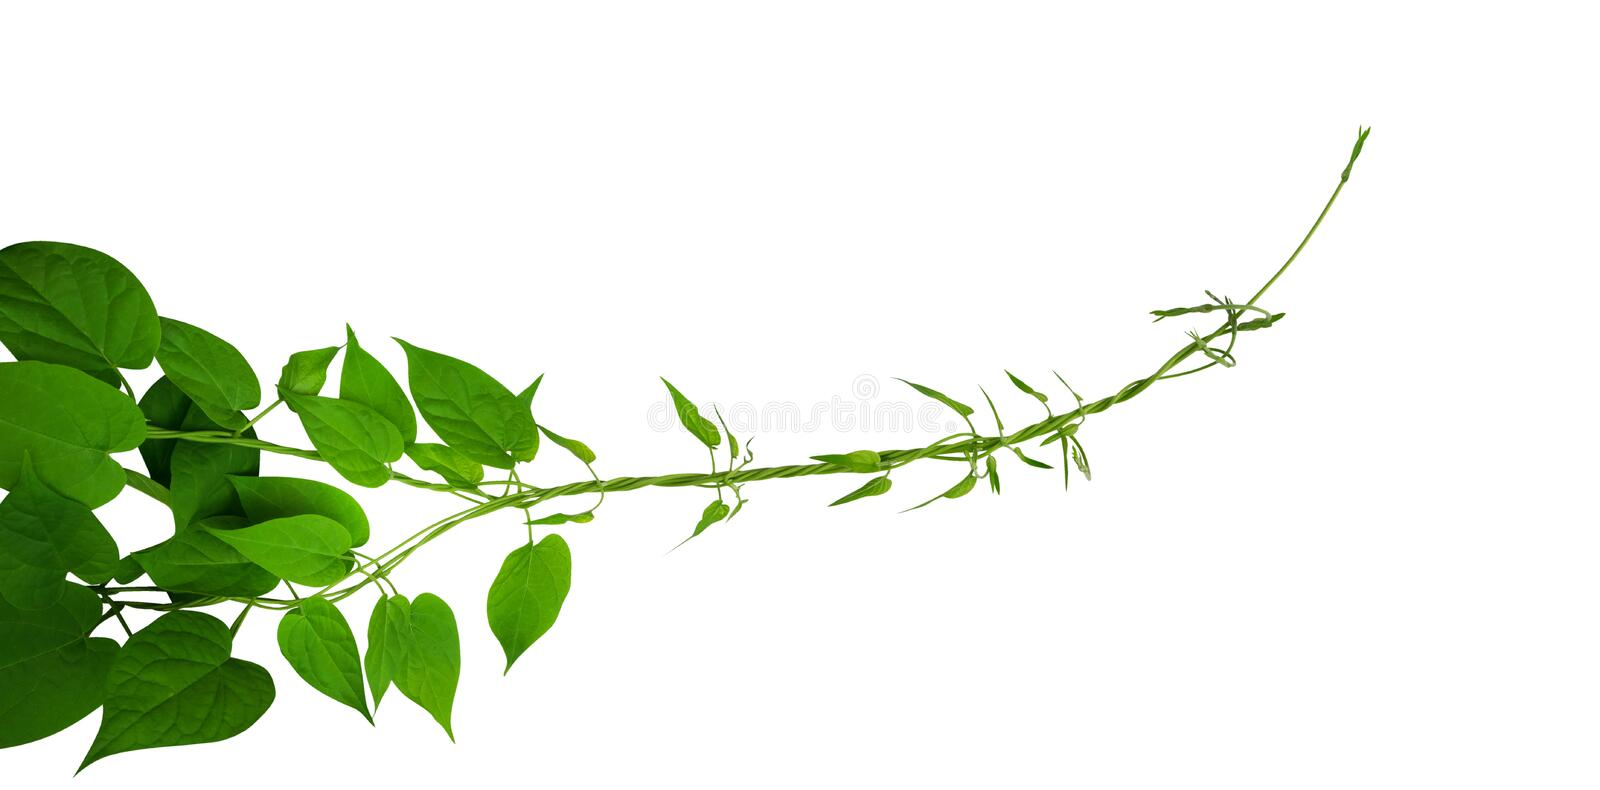 Heart shaped green leaf climbing vines isolated on white background download heart shaped green leaf climbing vines isolated on white background path stock photo mightylinksfo